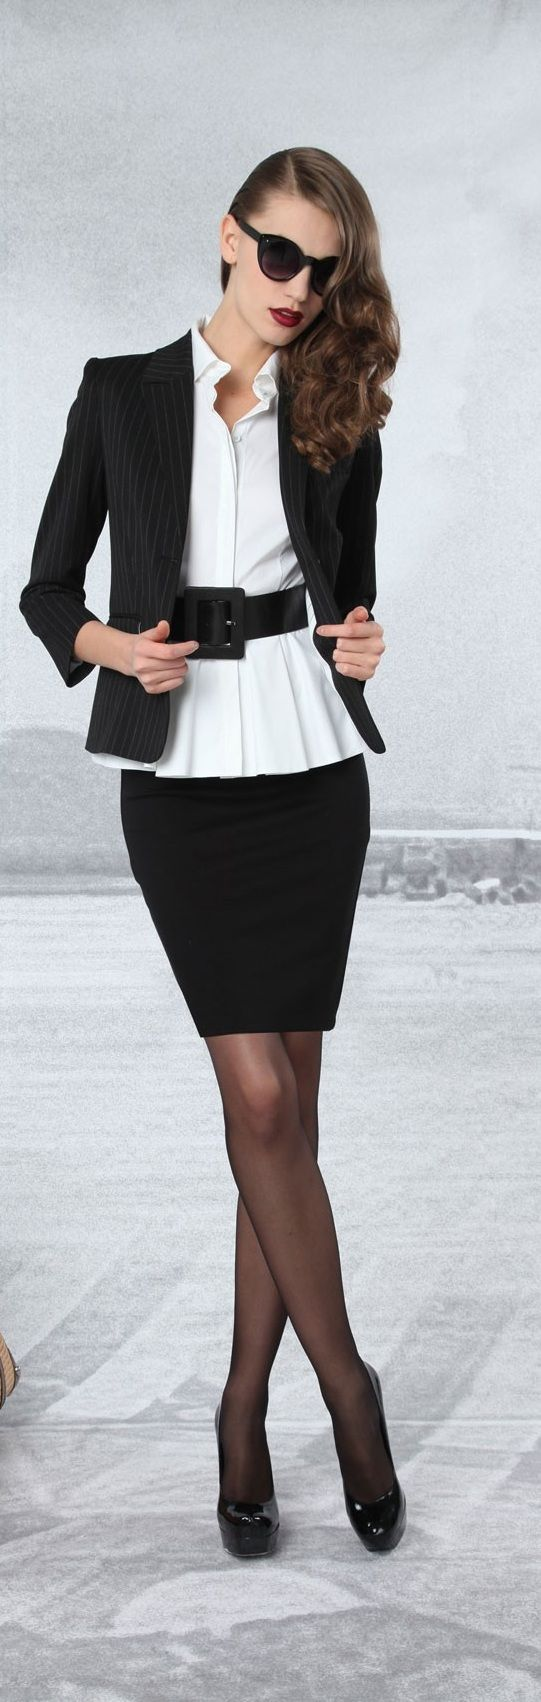 What's not to love about this Alice and Olivia outfit?  It's timeless!! Recreate it using Black/White Pinstripe, Black Menswear Wool and White on White Stripe fabrics from smfabric.com